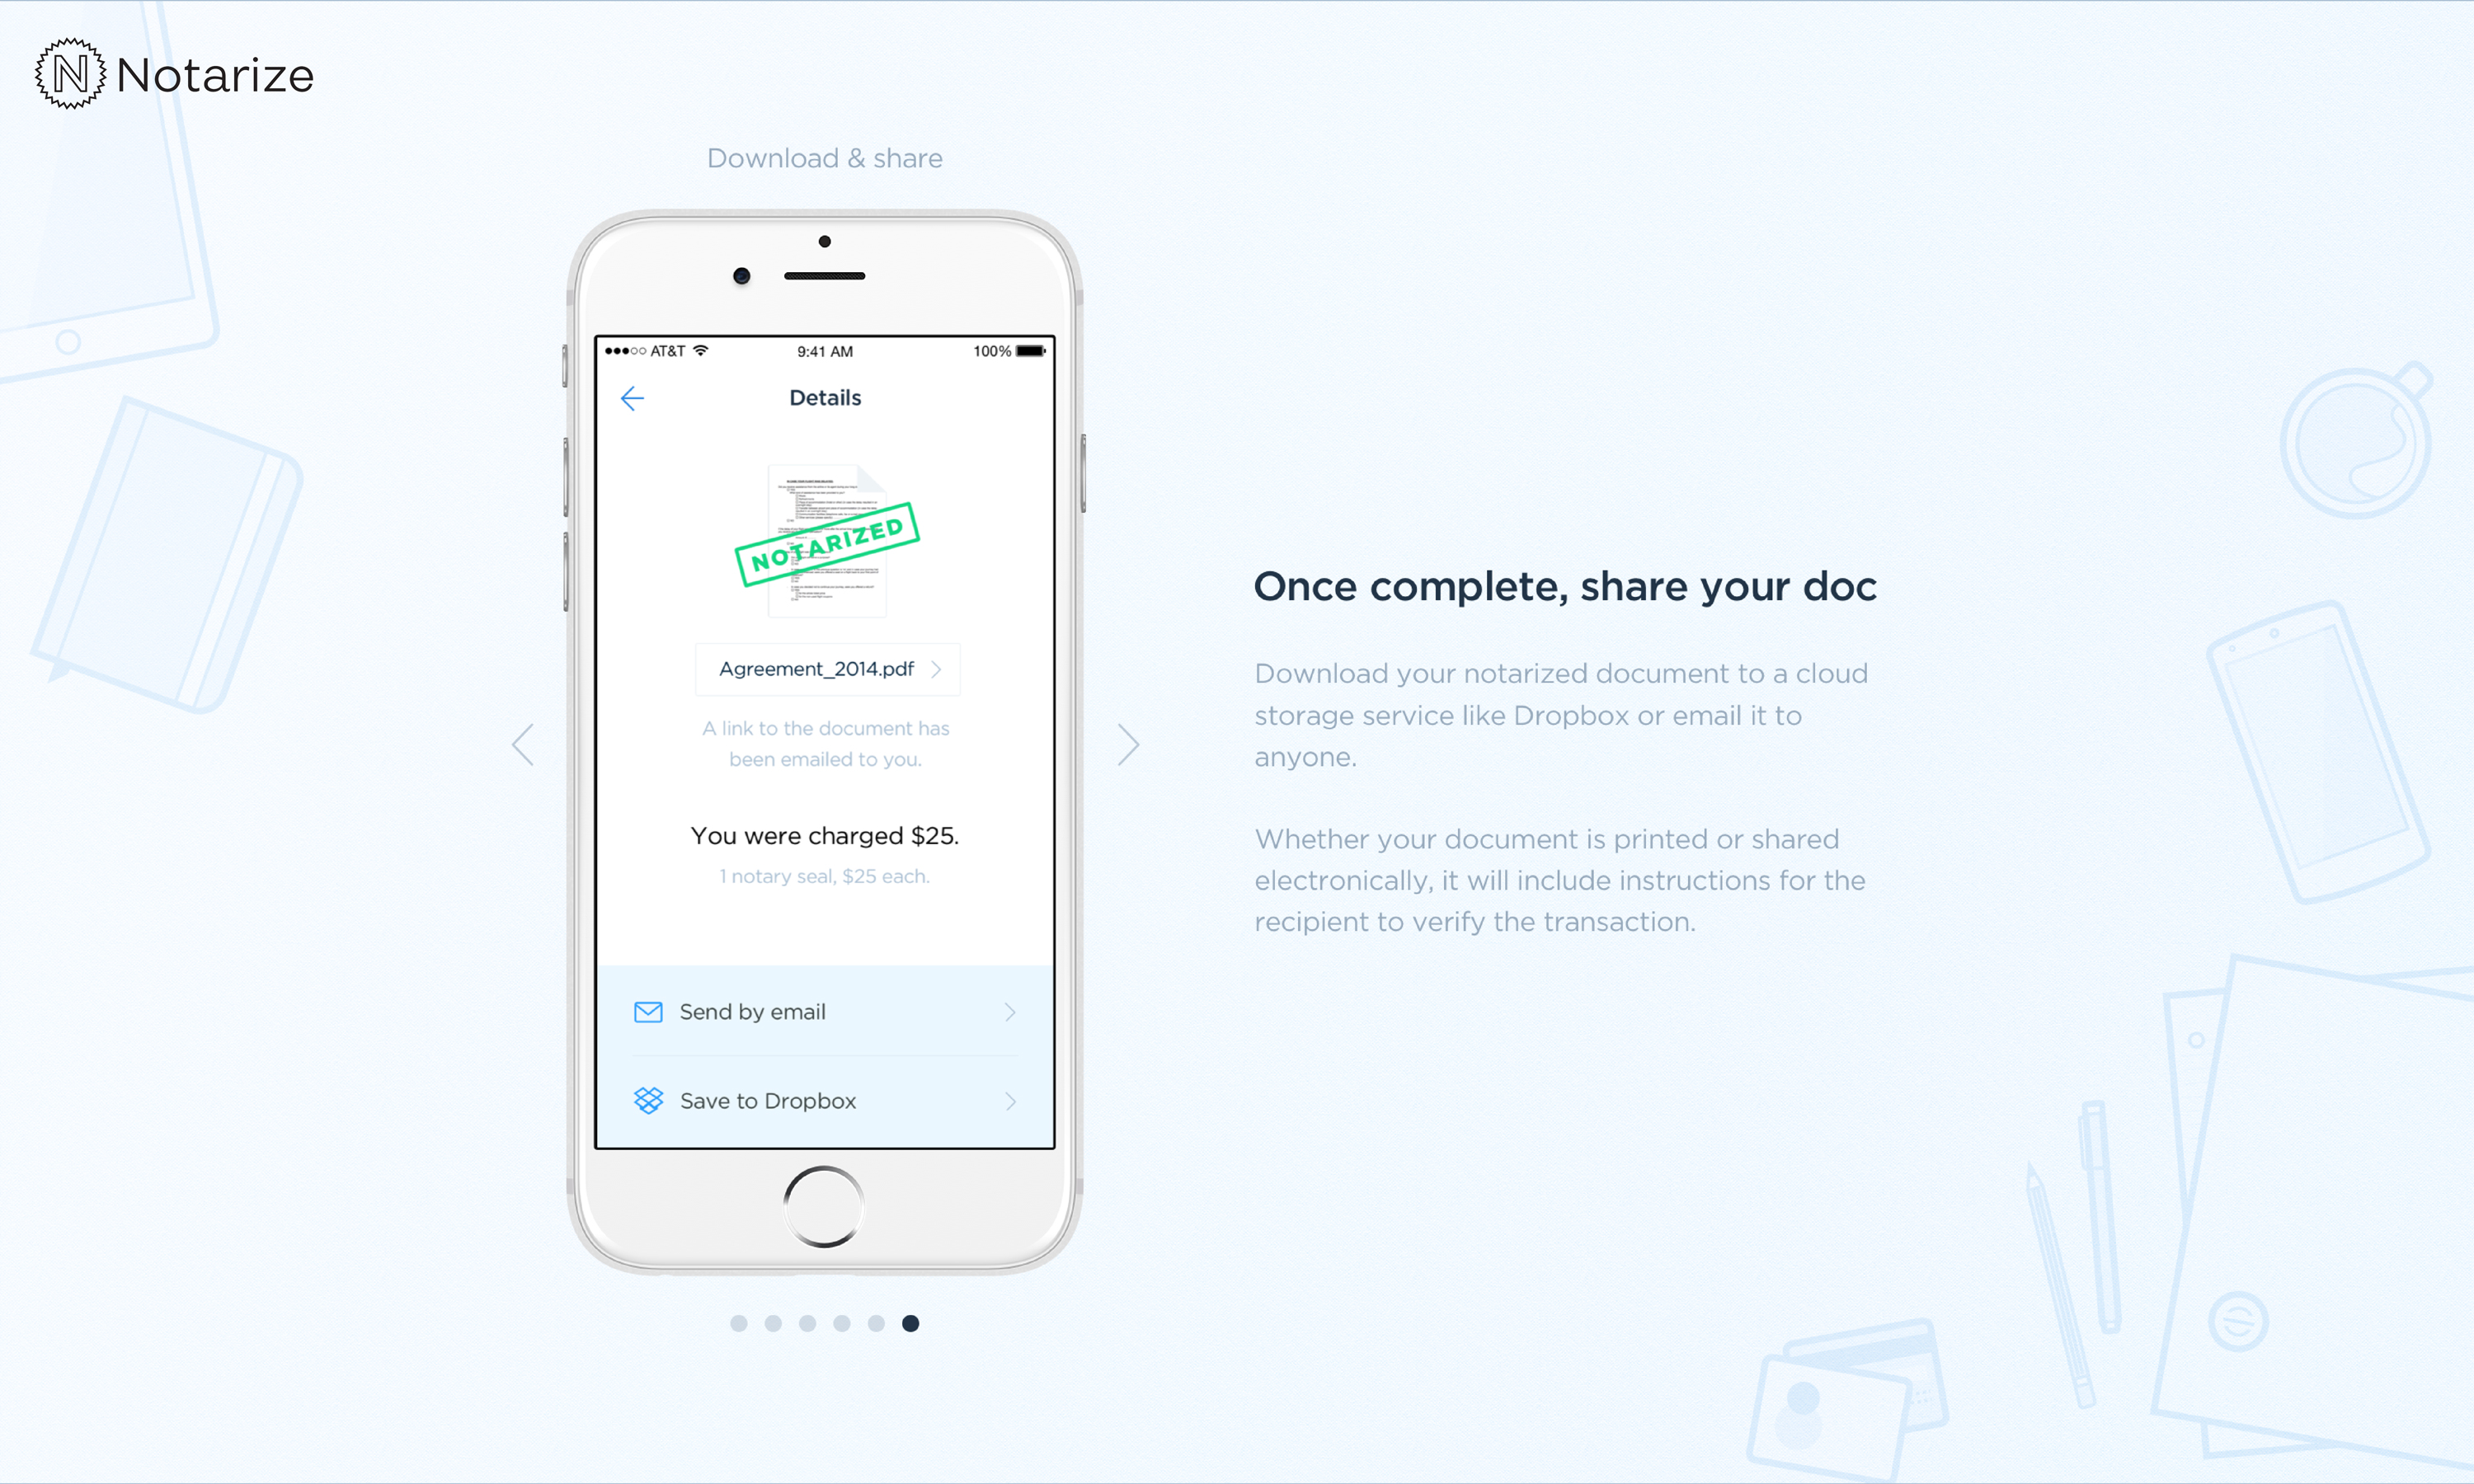 Have documents notarized from your iPhone with the new Notarize app